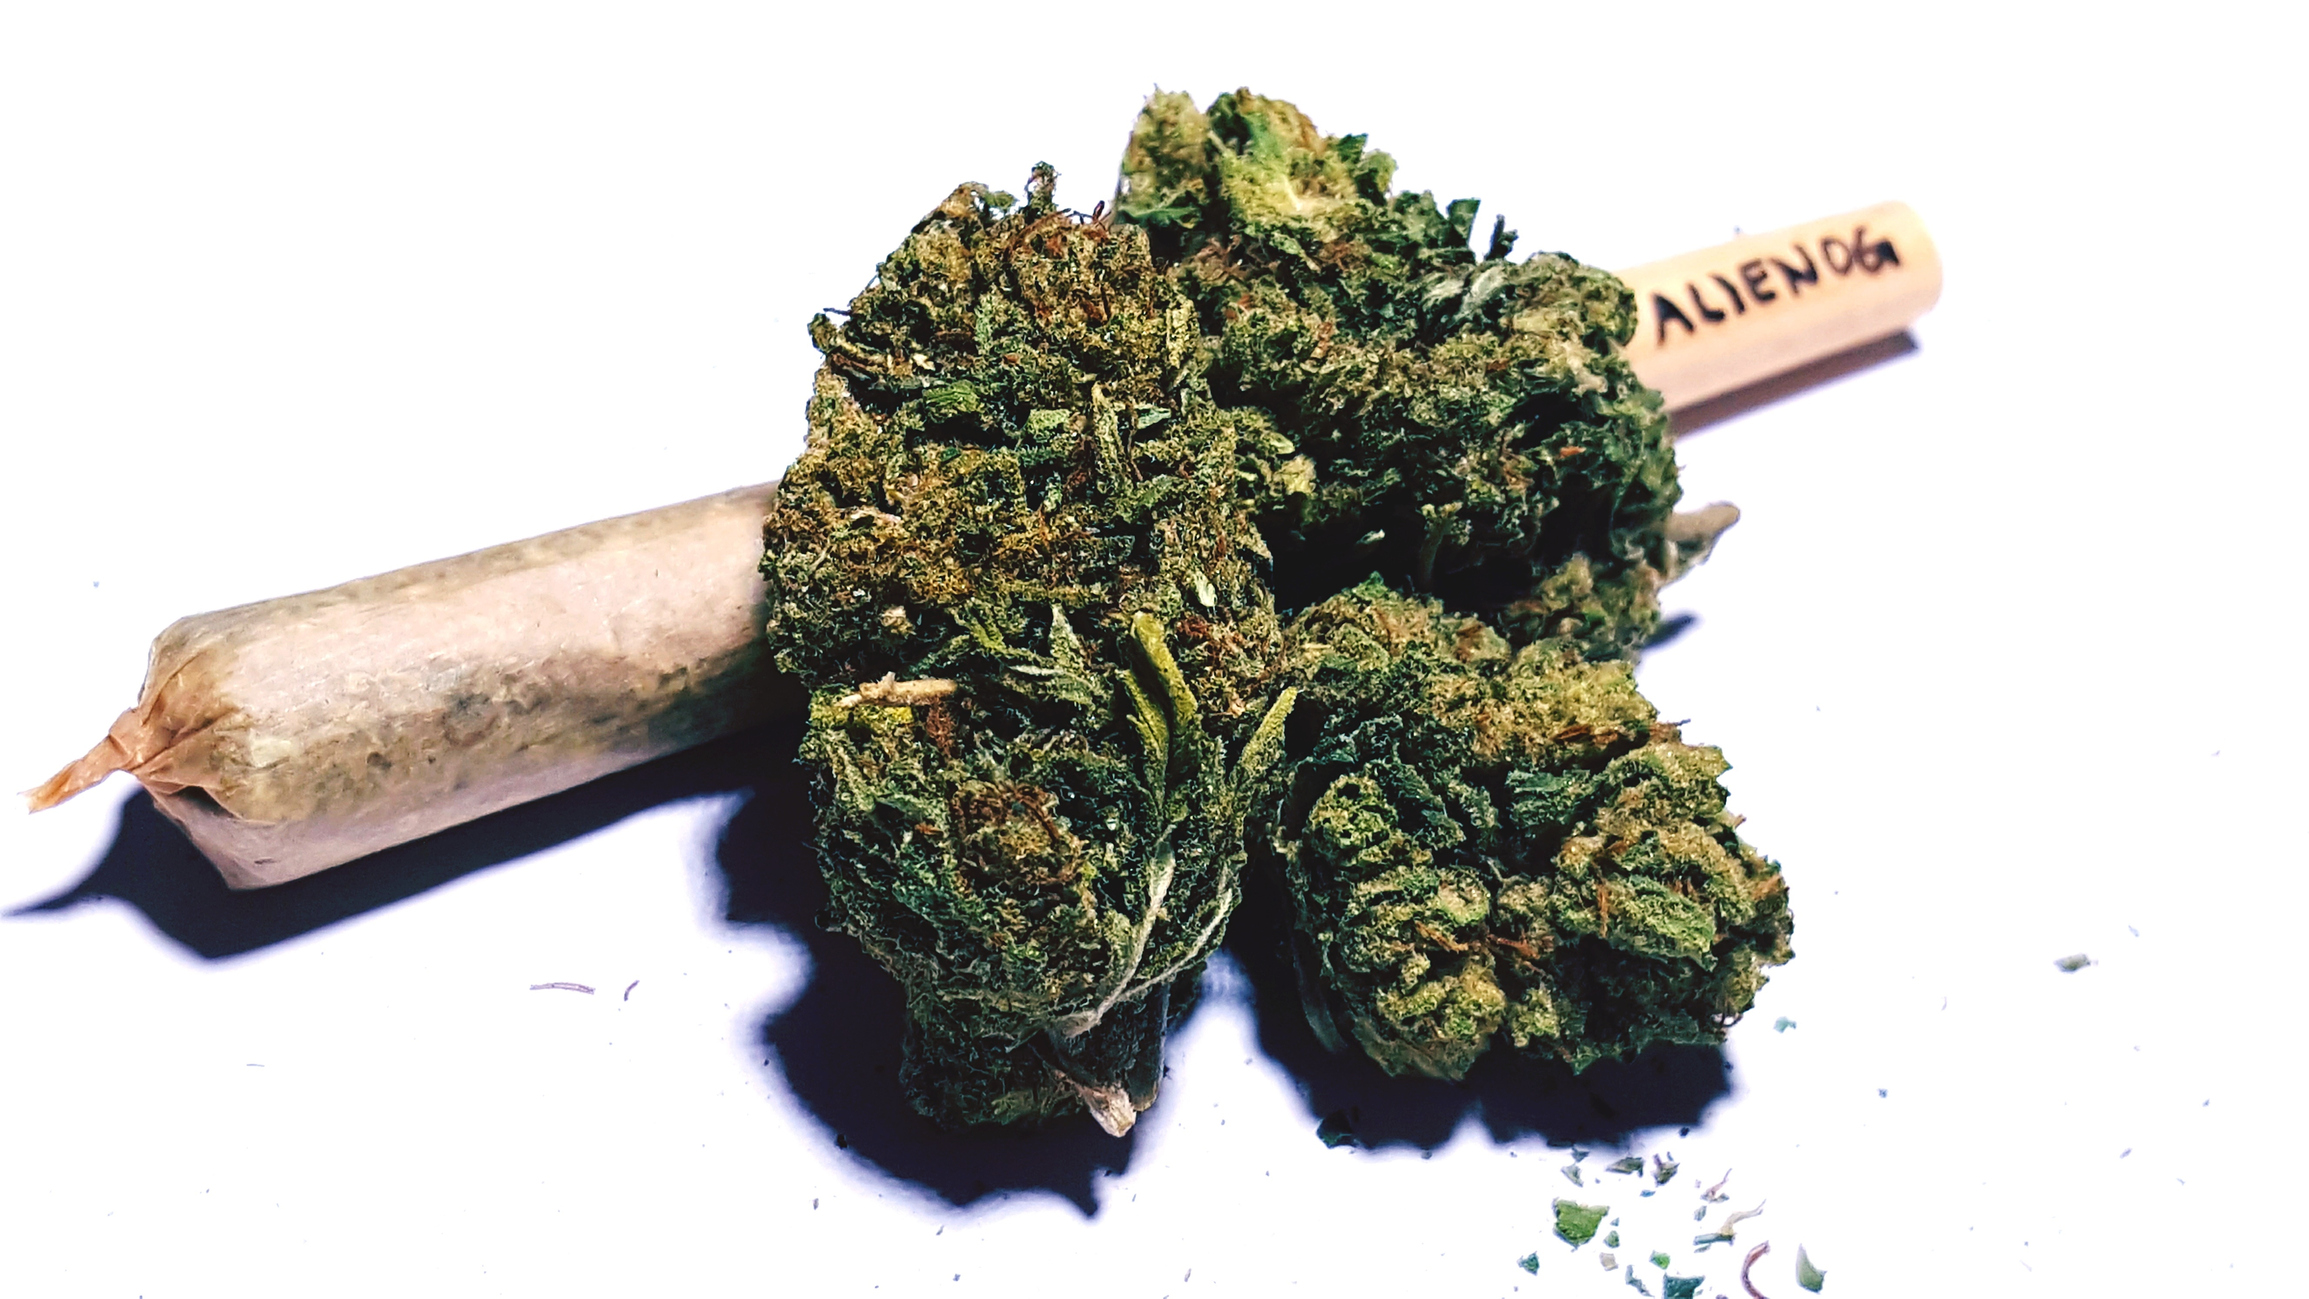 2019_0320-joint-with-buds.jpg